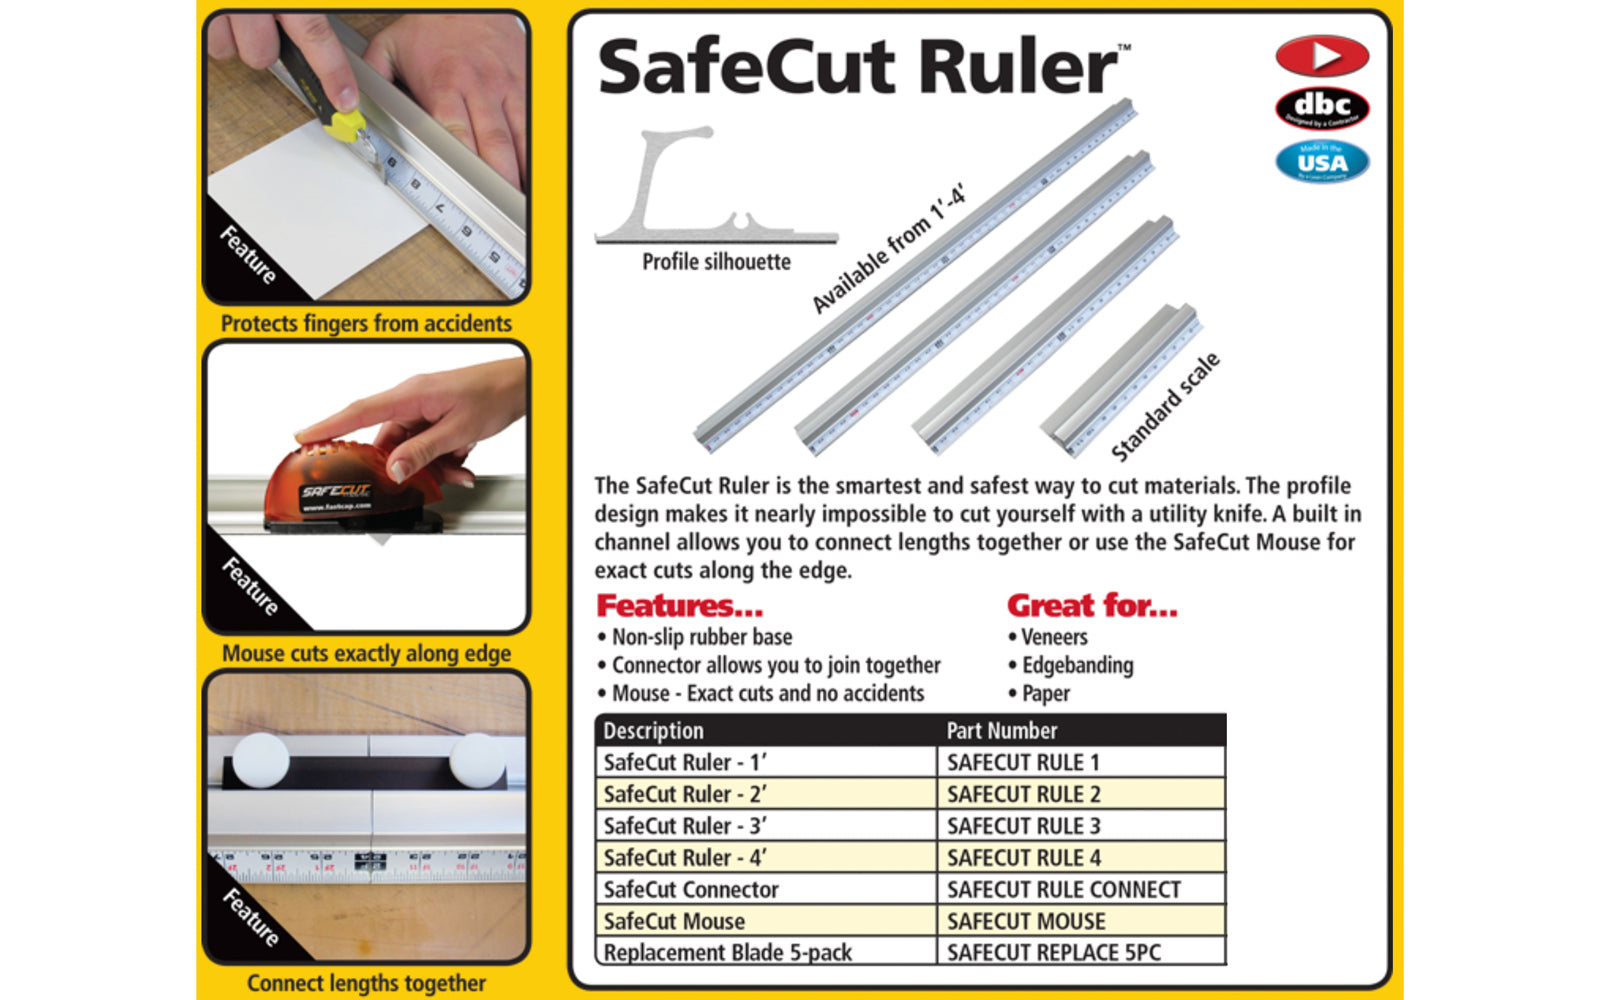 FastCap SafeCut Ruler - 48